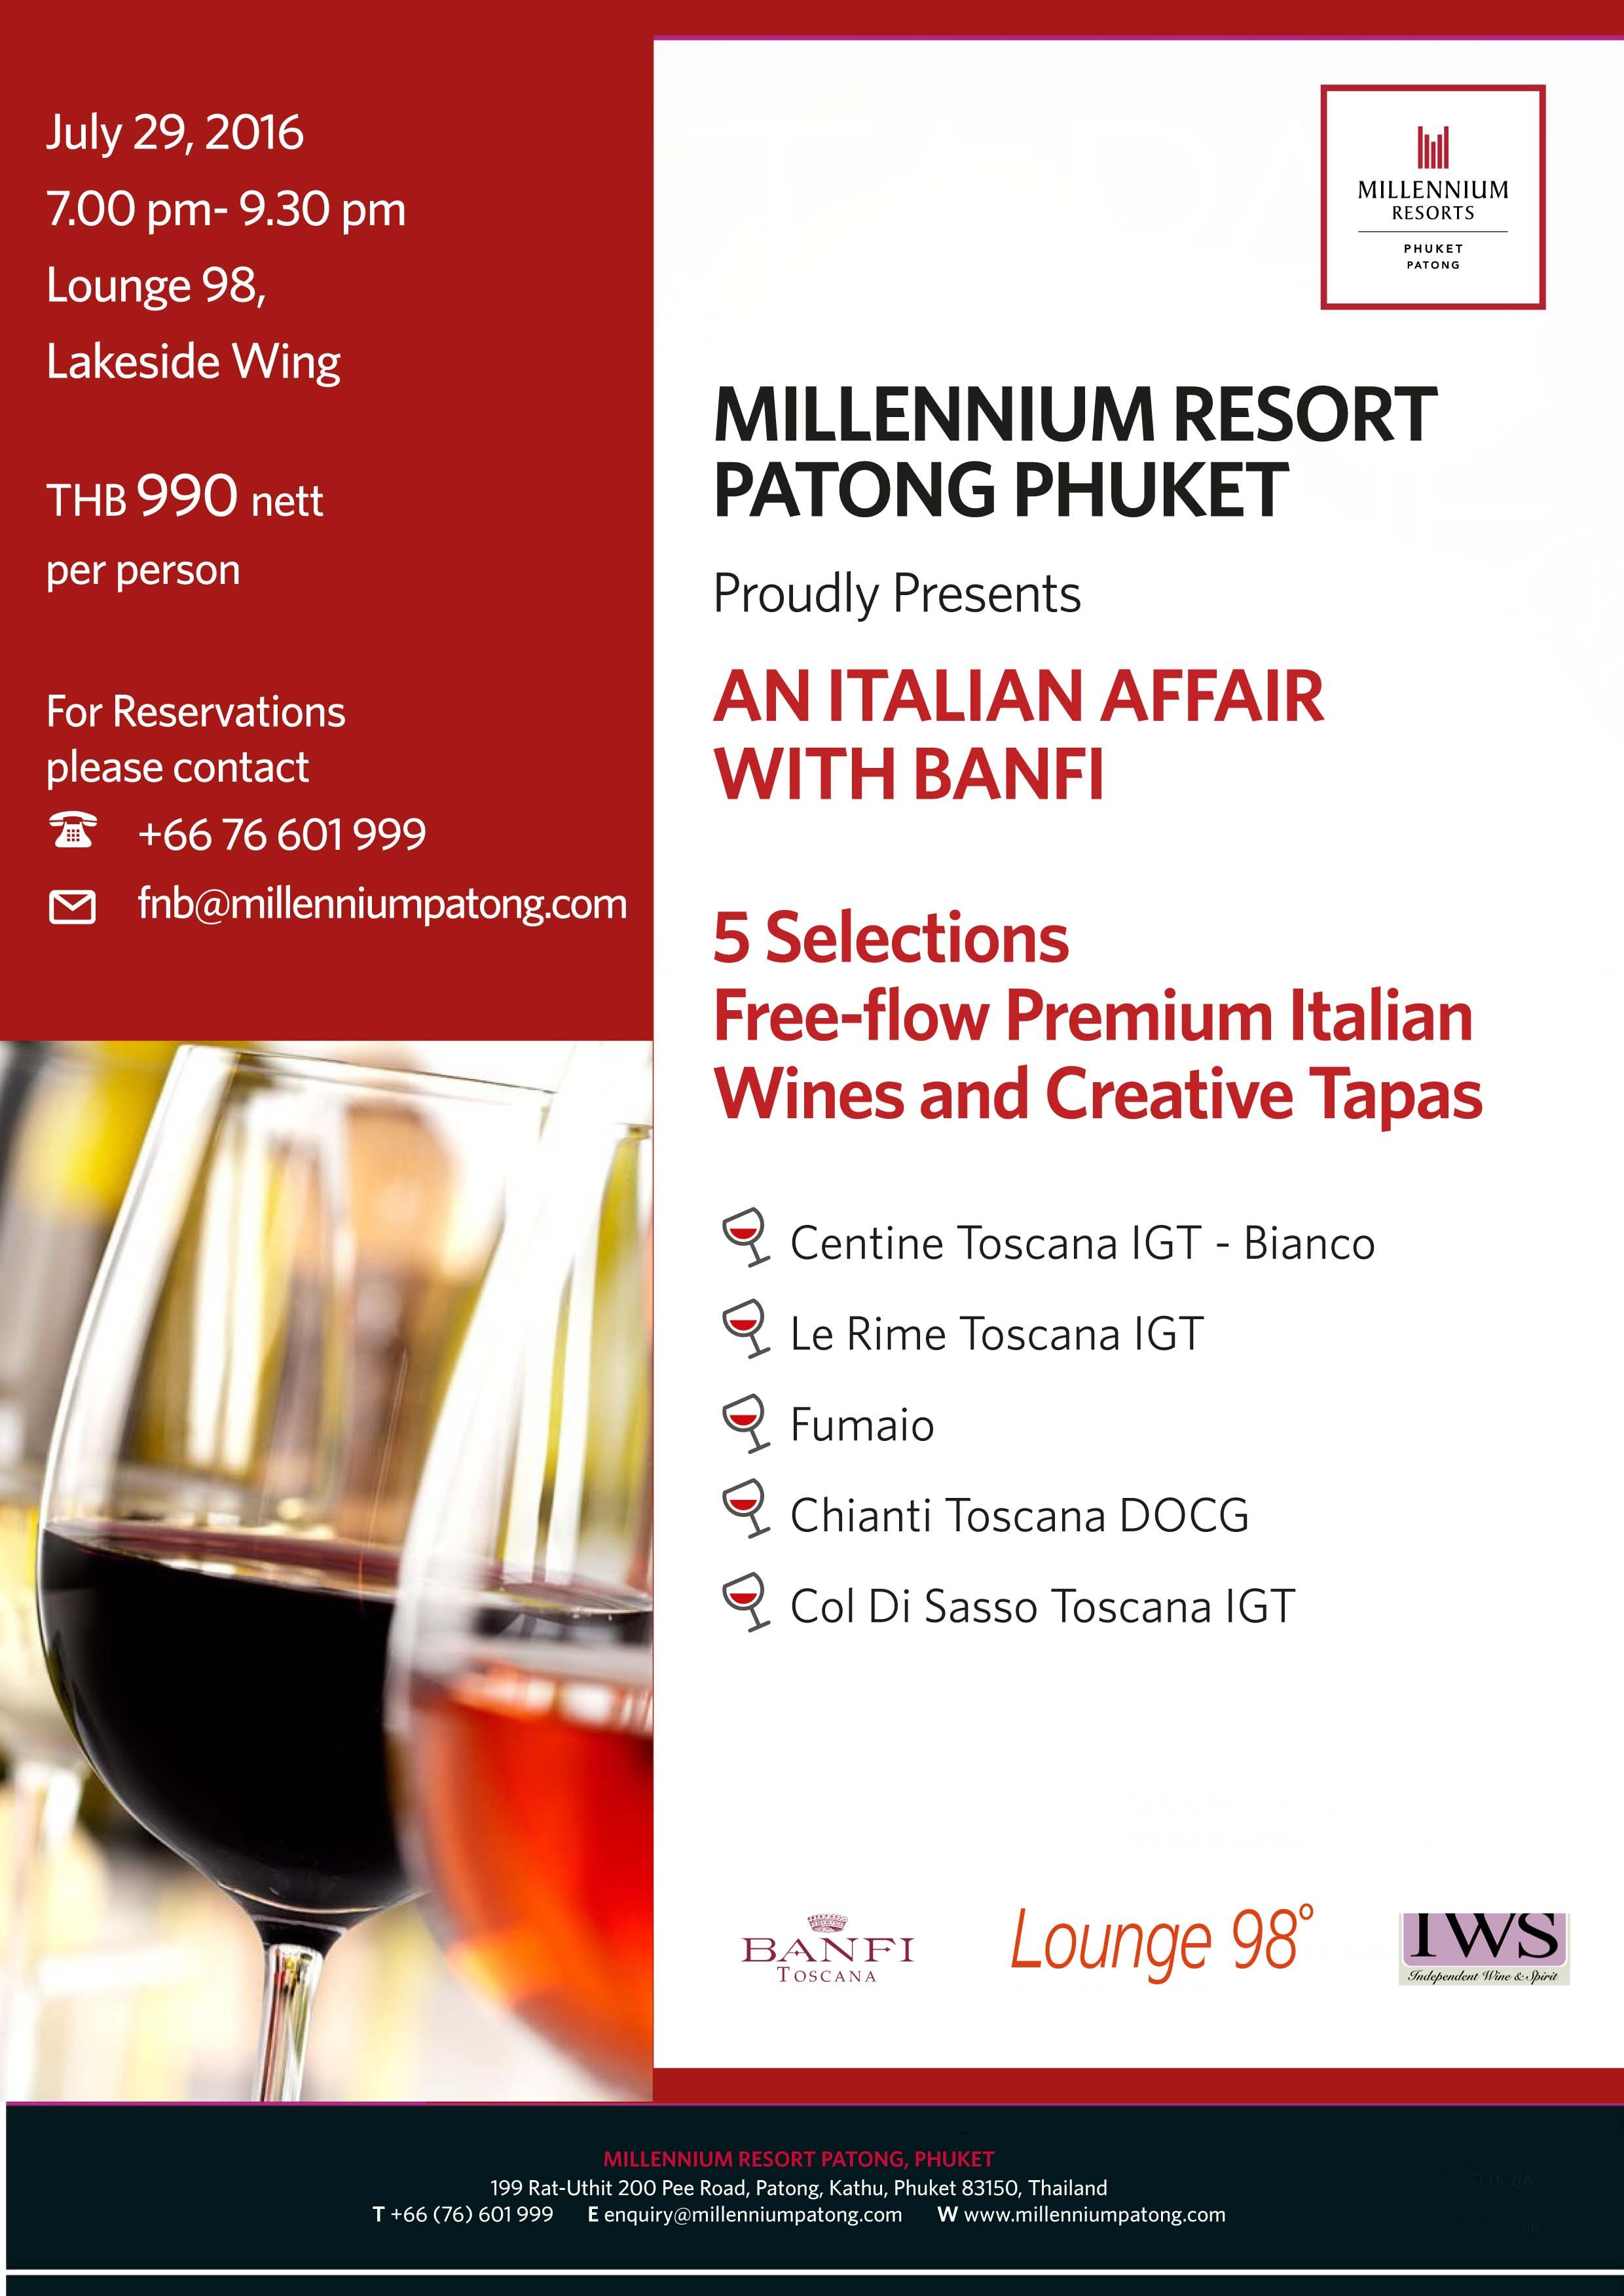 Millennium Resort Patong Phuket Proudly Presents An Italian Affair With Banfi 5 Selections Free Flow Premium Italian Wines Italian Wine Resort Wine Tasting